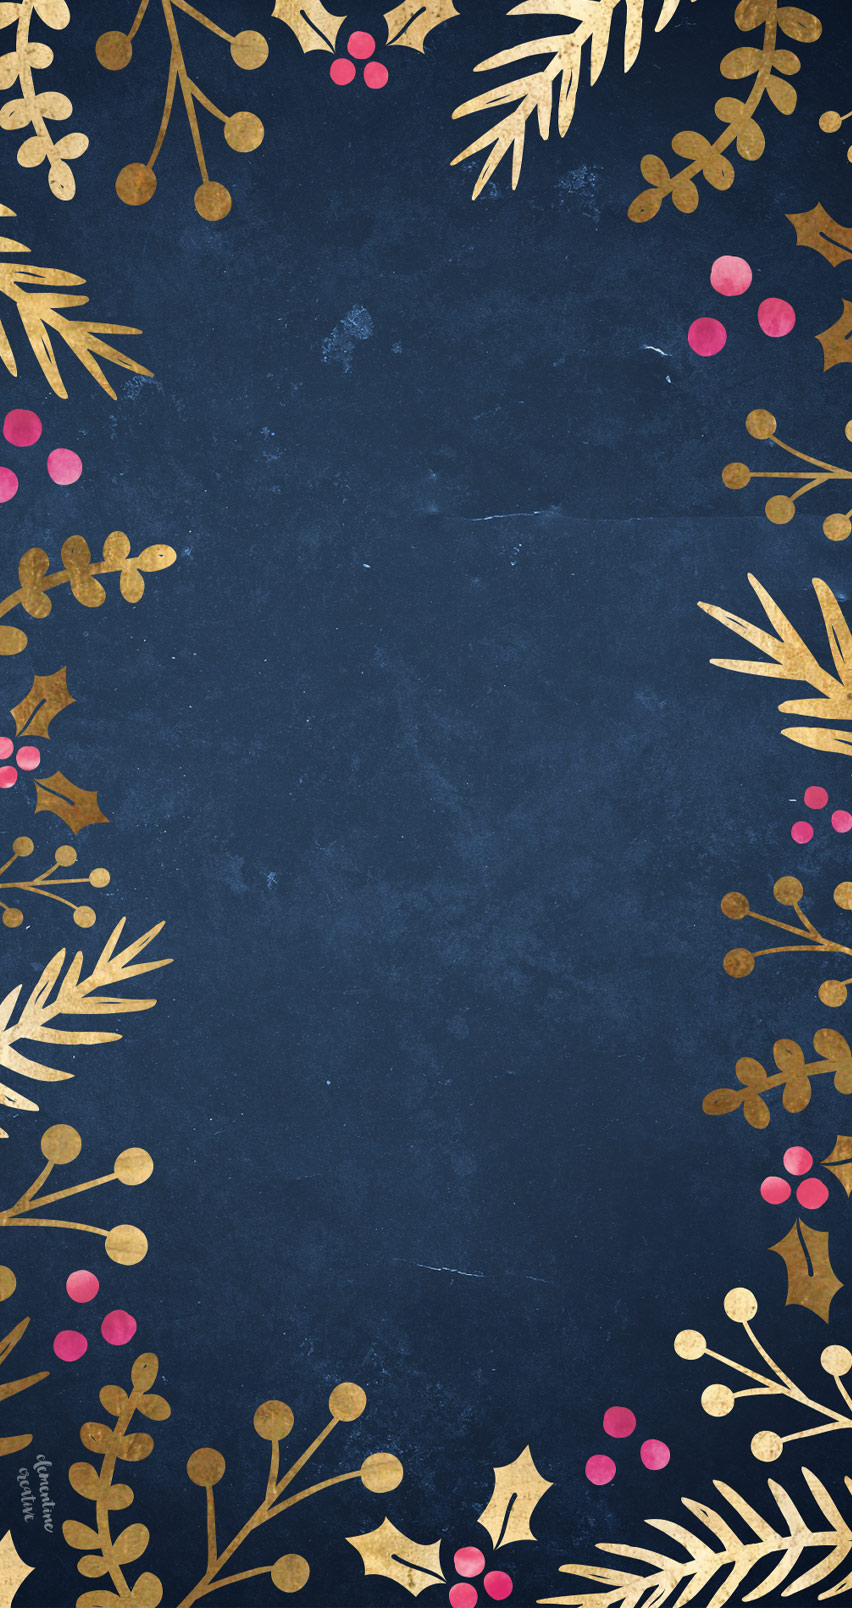 Free Festive Wallpaper: Gold Foil Foliage